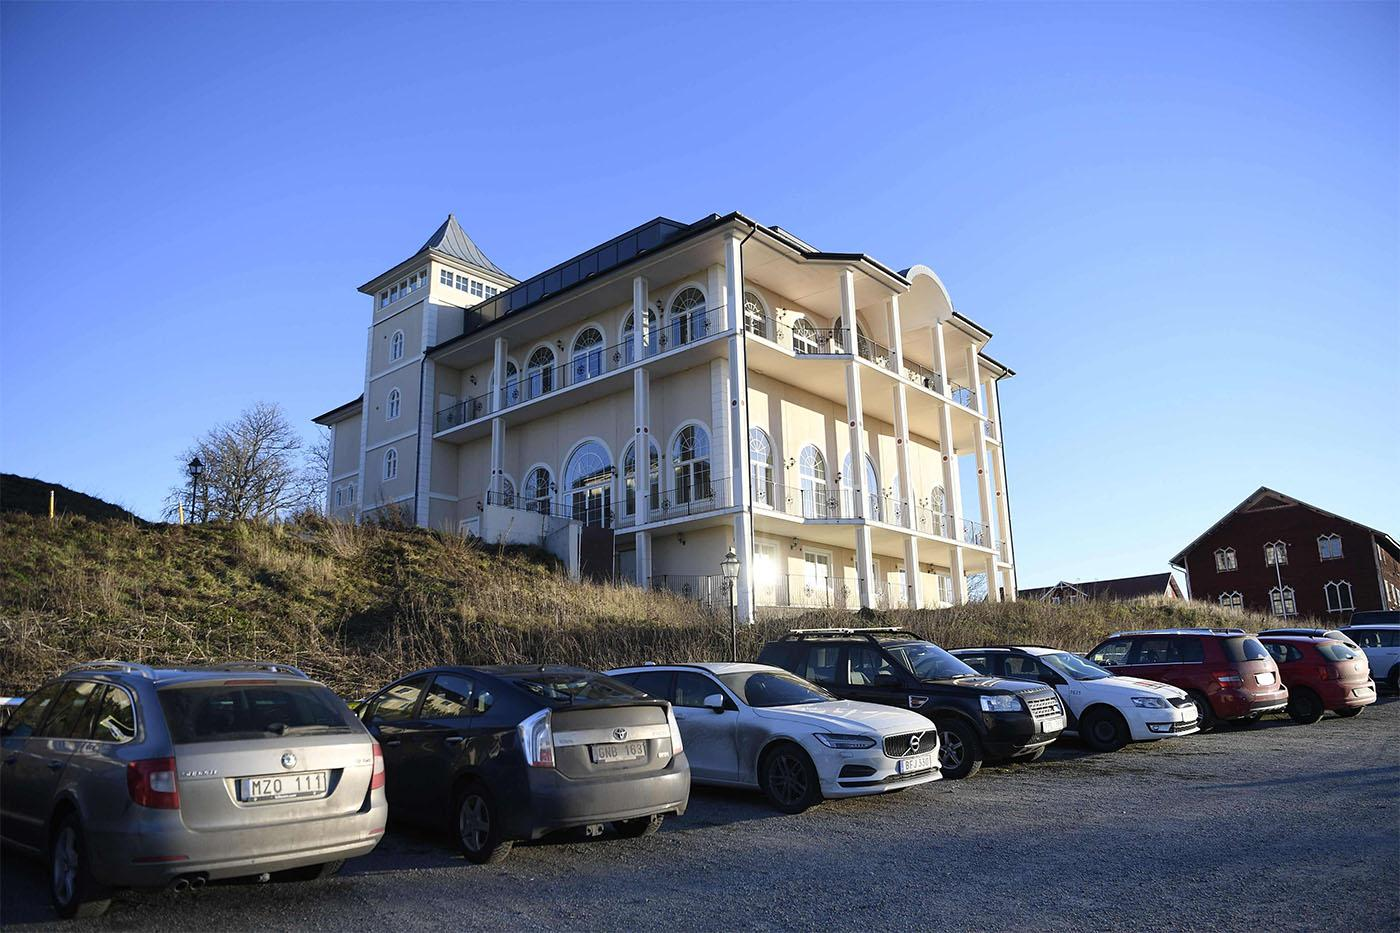 Peace talks are taking place at Johannesberg Castle in Rimbo, 50km north of Stockholm